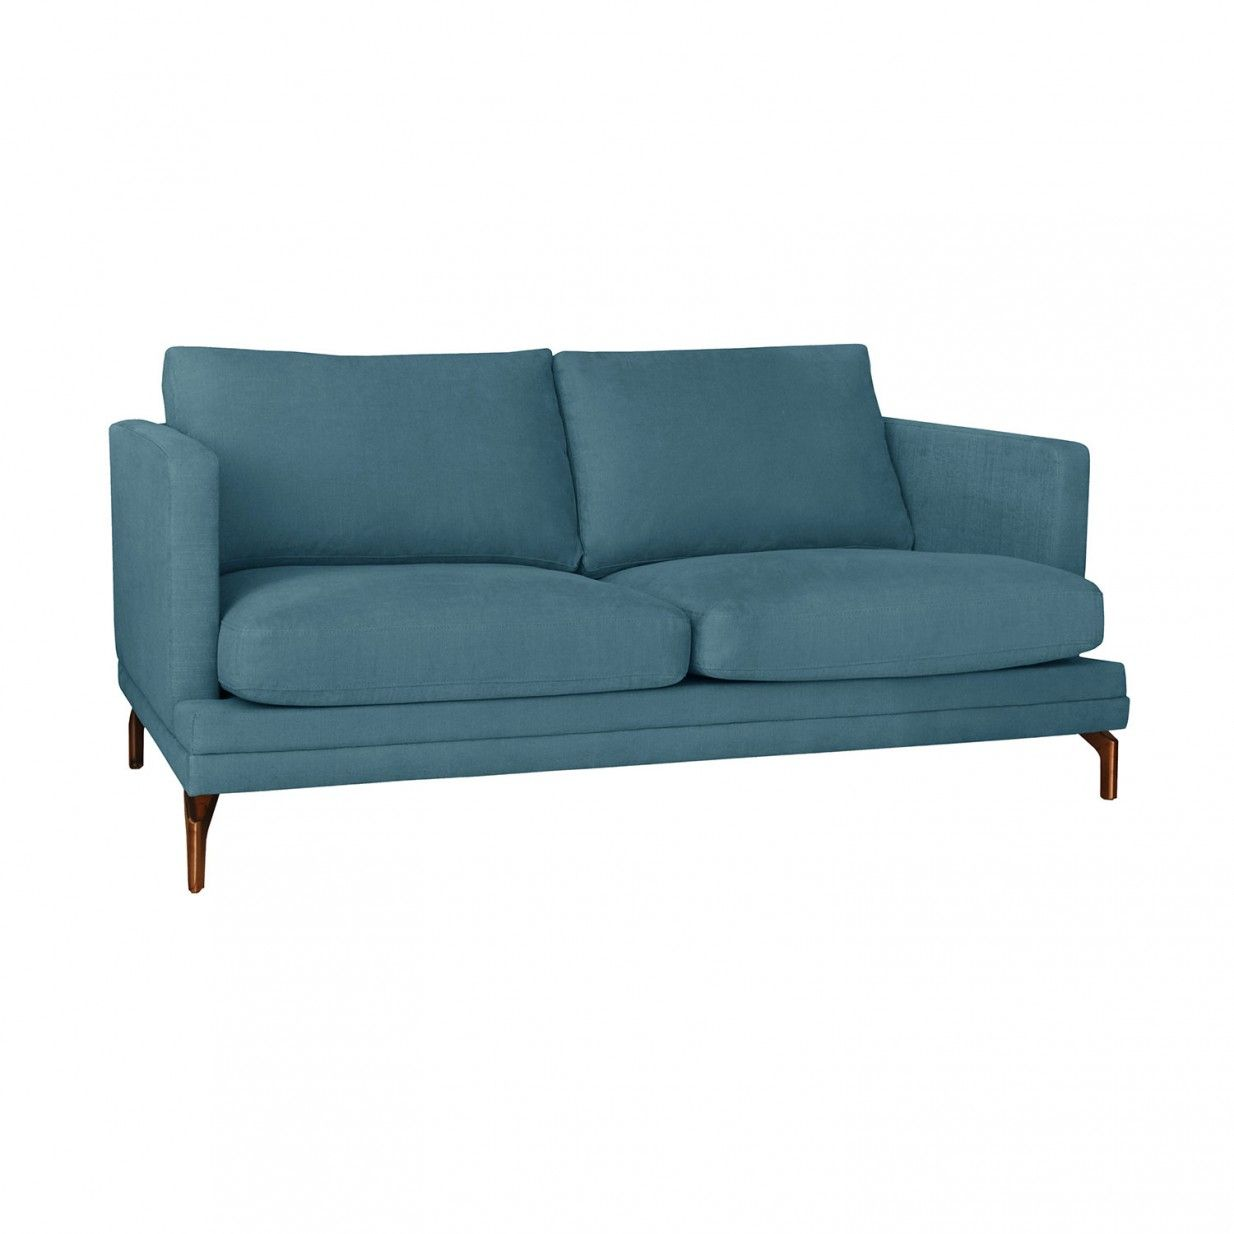 Sofa Türkis Jupiter 2 Sitzer Sofa Türkis Windsor Co Sofas Möbel